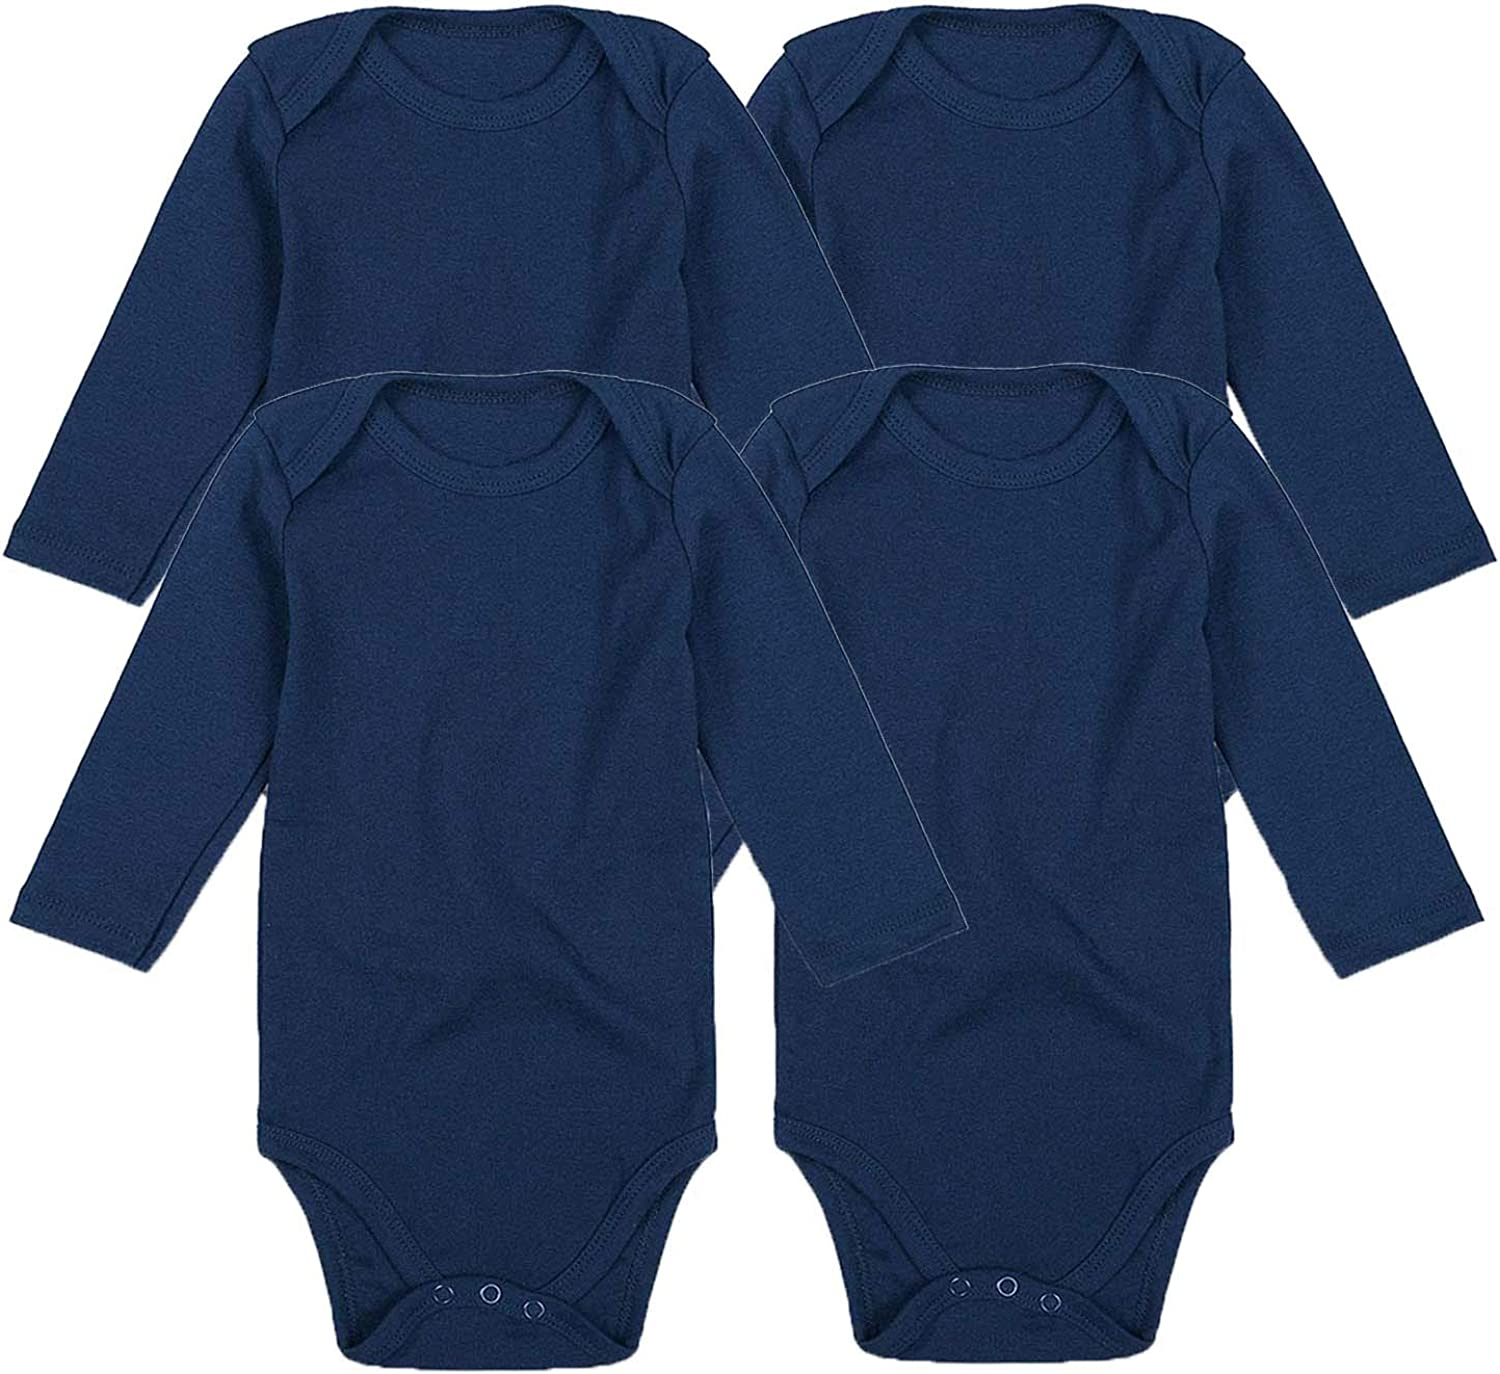 Lizerlly 4-Pack Blue Solid Color Baby Bodysuit Long Sleeve Infant Rompers Climbing Suit